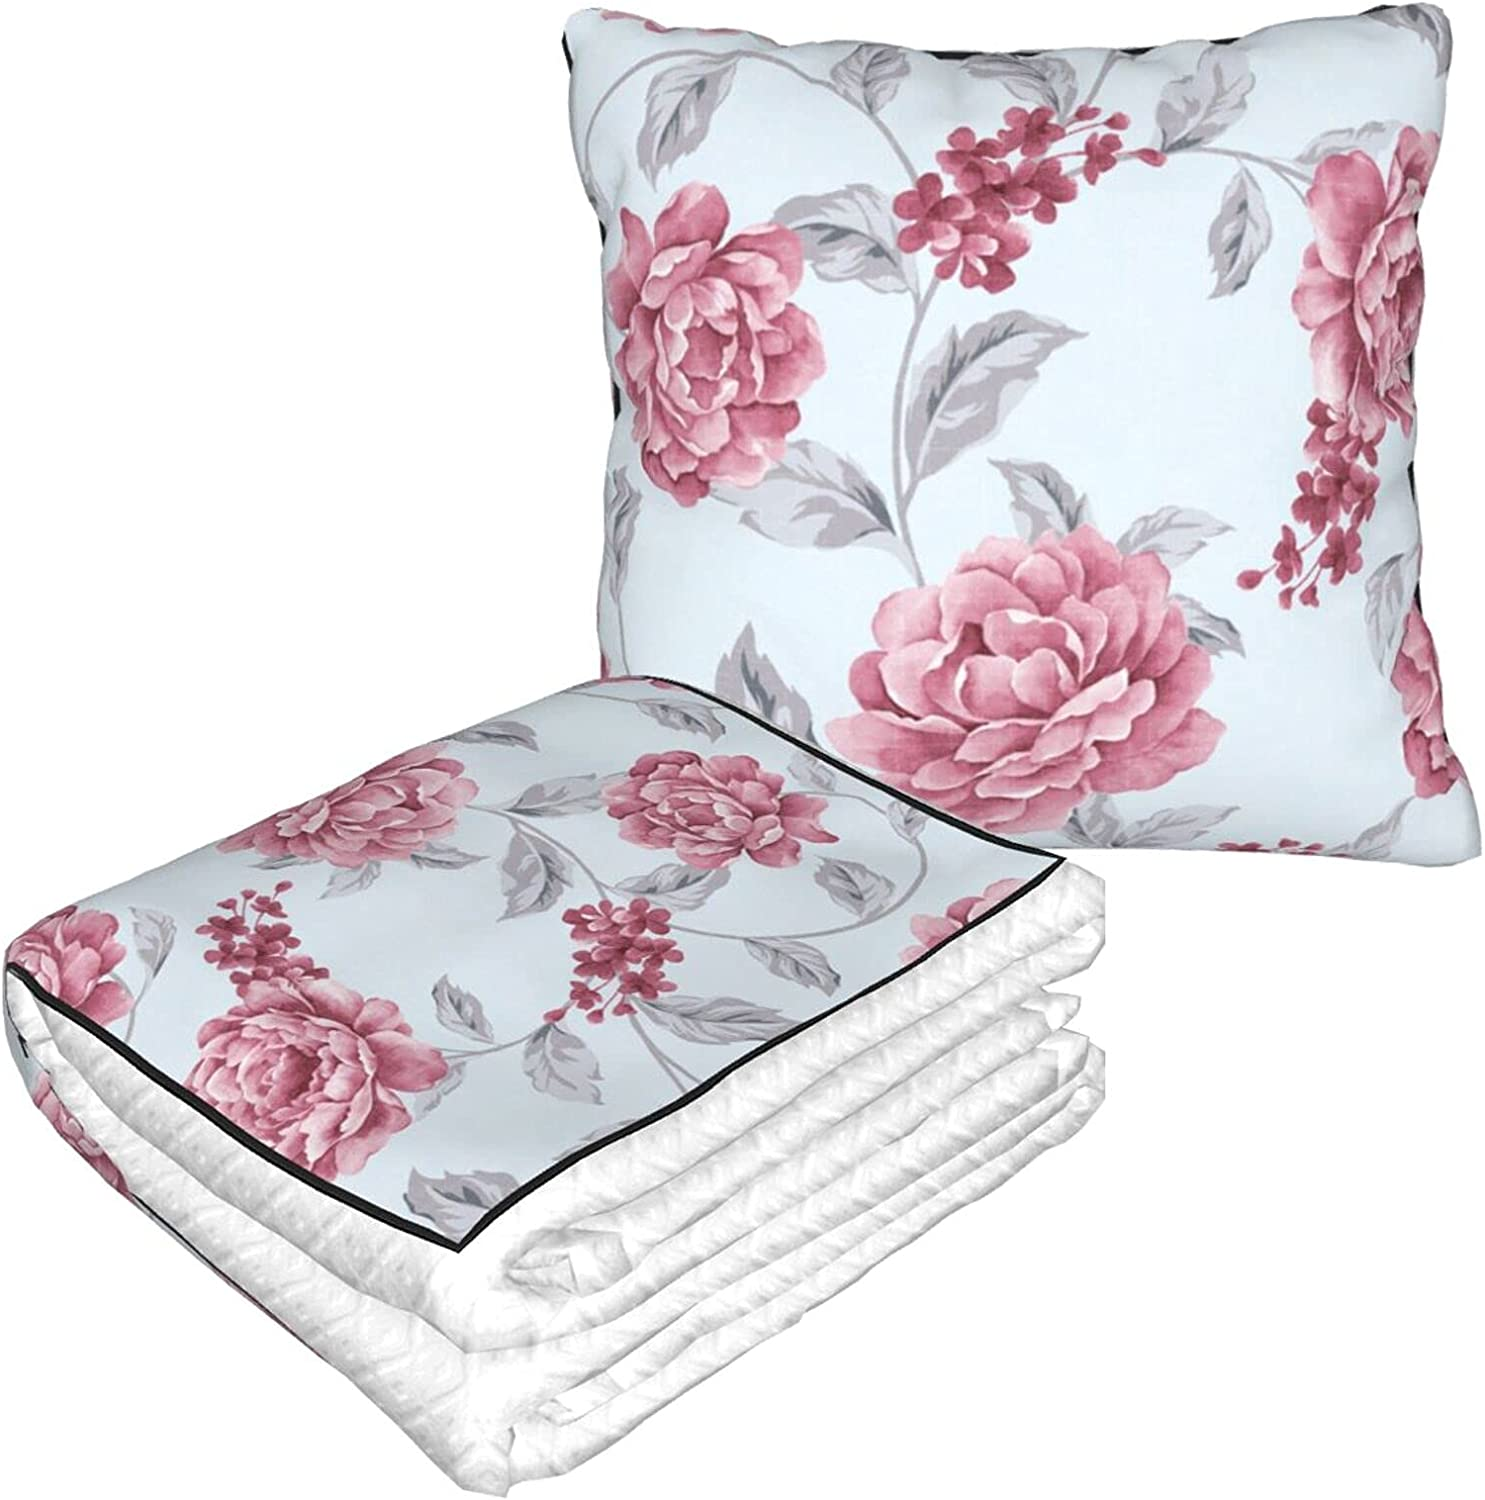 Fresh Spring Flowers Portable Comfort Max 59% OFF Blan Limited time for free shipping Blankets Items Pillow